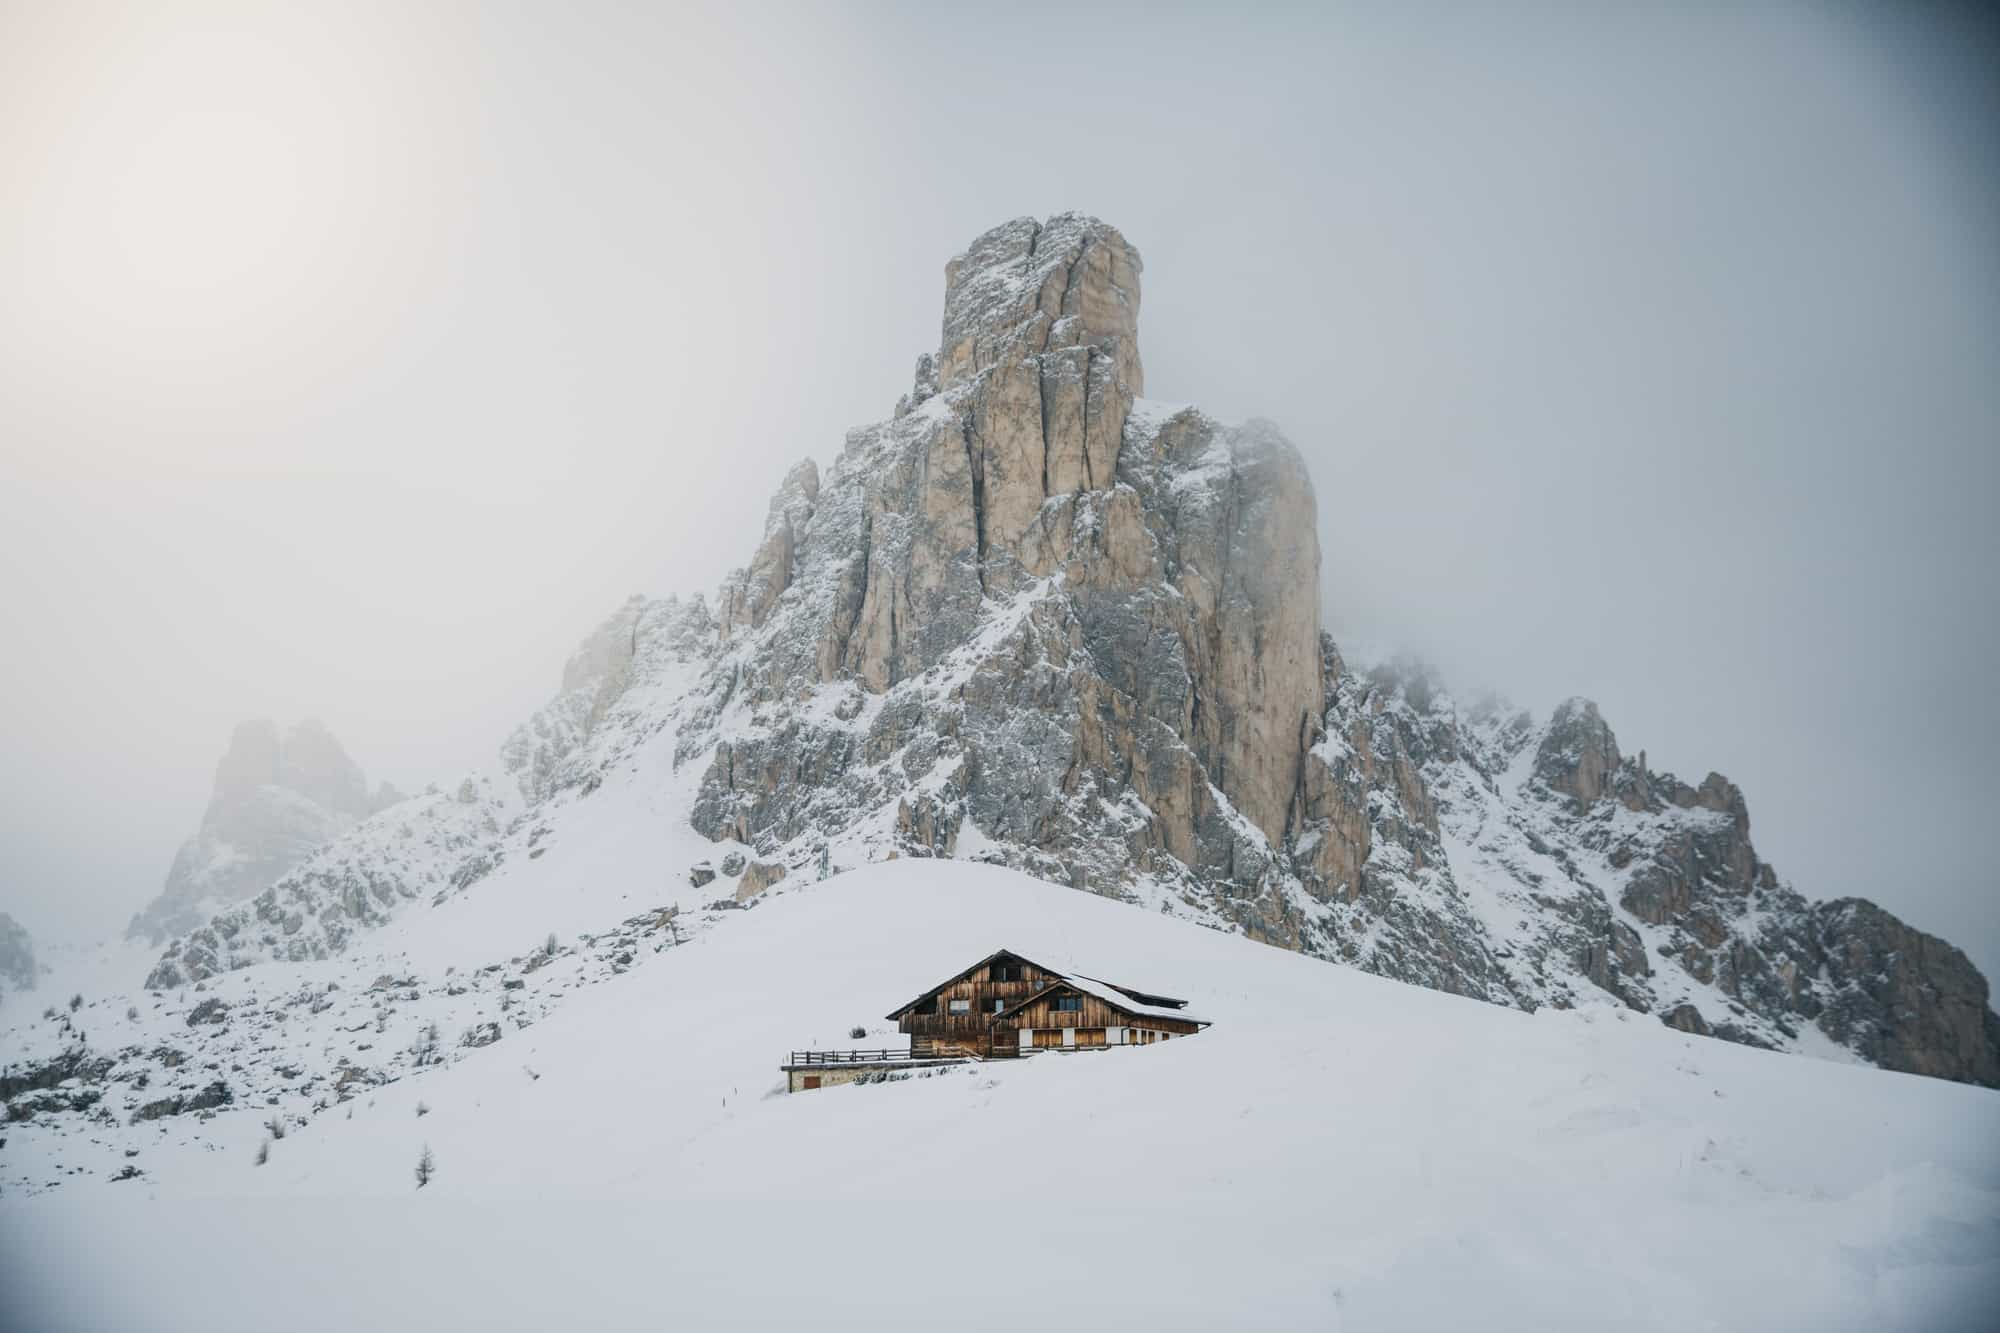 dolomites winter